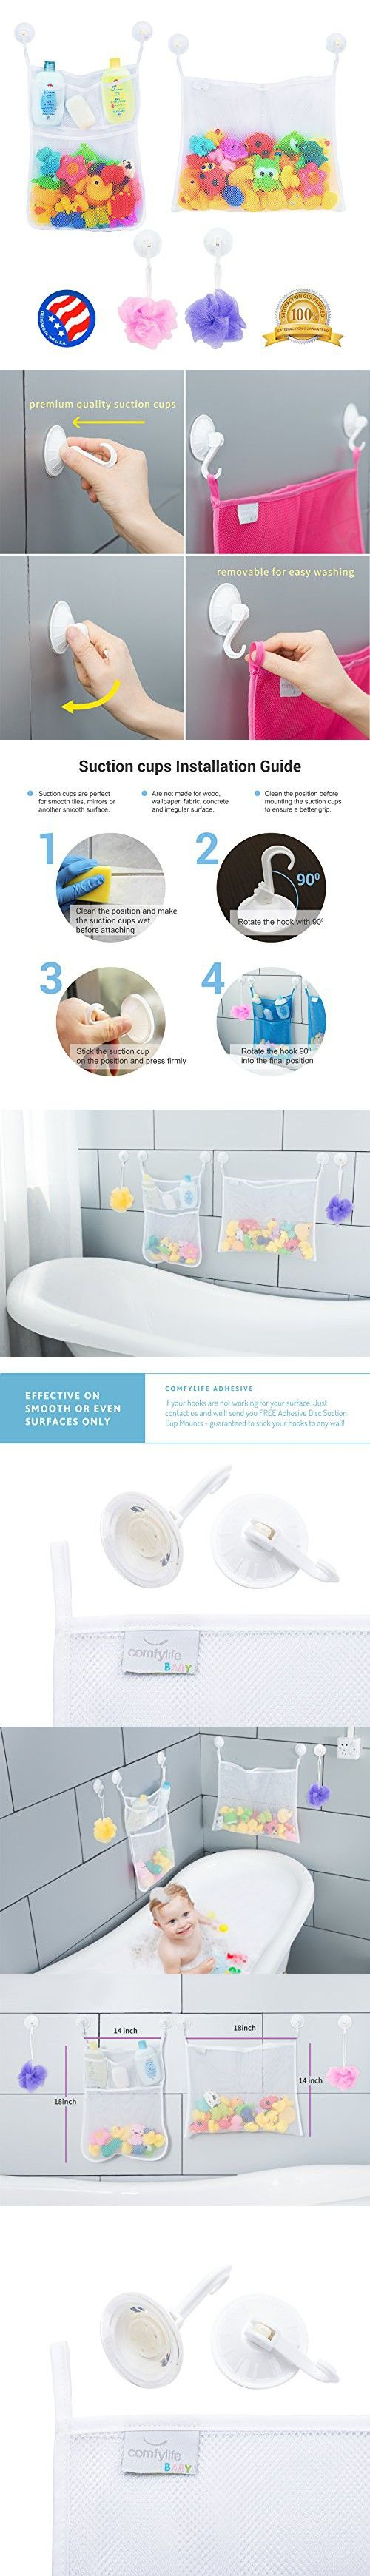 2 x Mesh Bath Toy Organizer + 6 Ultra Strong Hooks  The Perfect Net for Bathtub Toys & Bathroom Storage  These Multi-Use Organizer Bags Make Bath Toy Storage Easy  For Kids, Toddlers & Adults